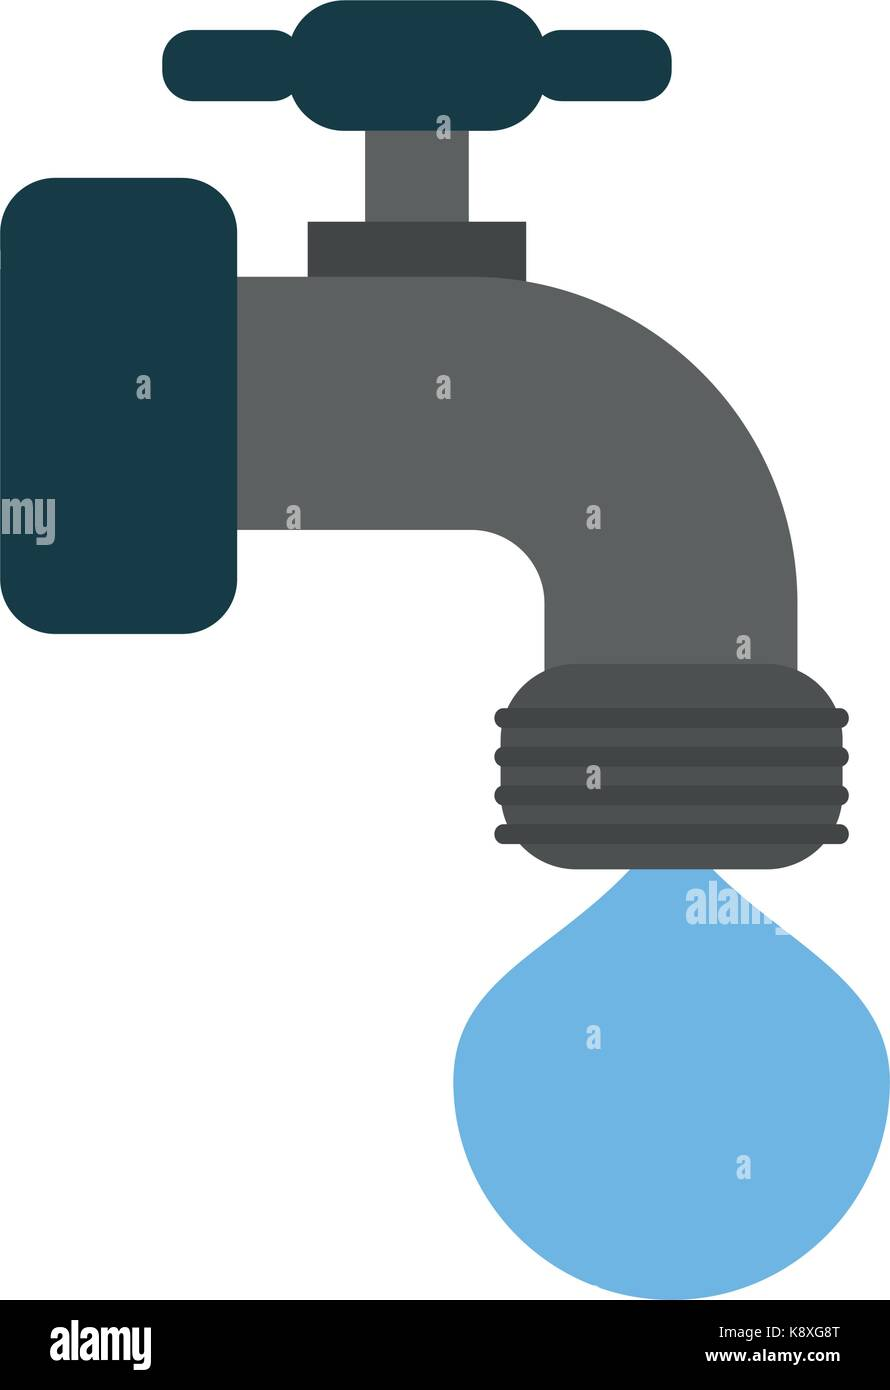 faucet and water drop icon image  - Stock Image